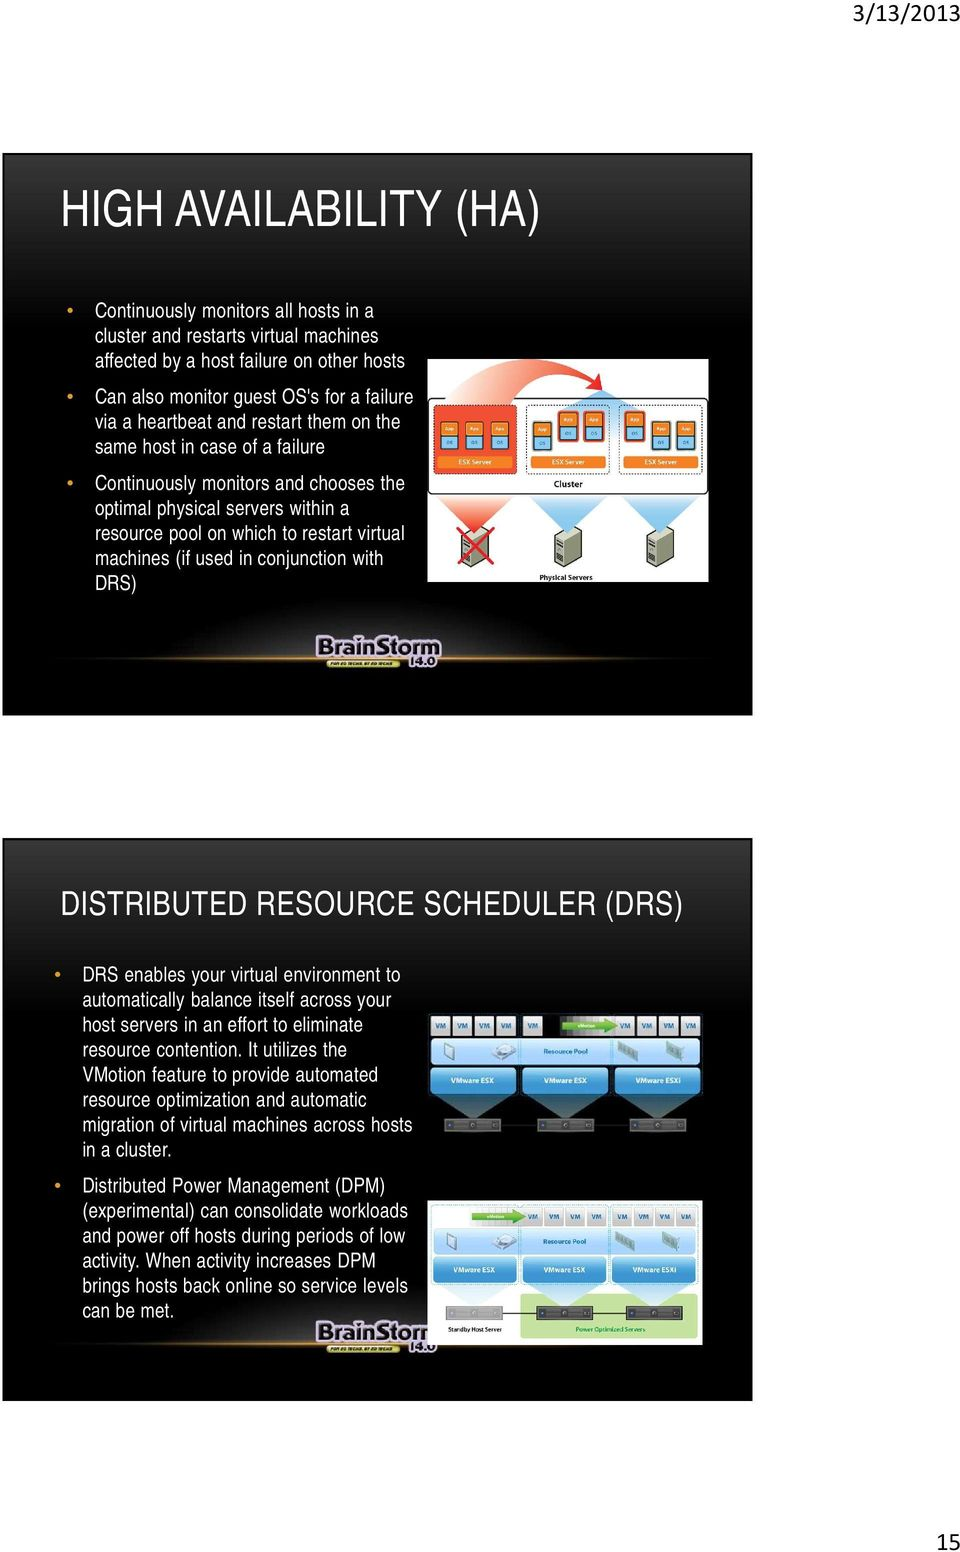 conjunction with DRS) DISTRIBUTED RESOURCE SCHEDULER (DRS) DRS enables your virtual environment to automatically balance itself across your host servers in an effort to eliminate resource contention.